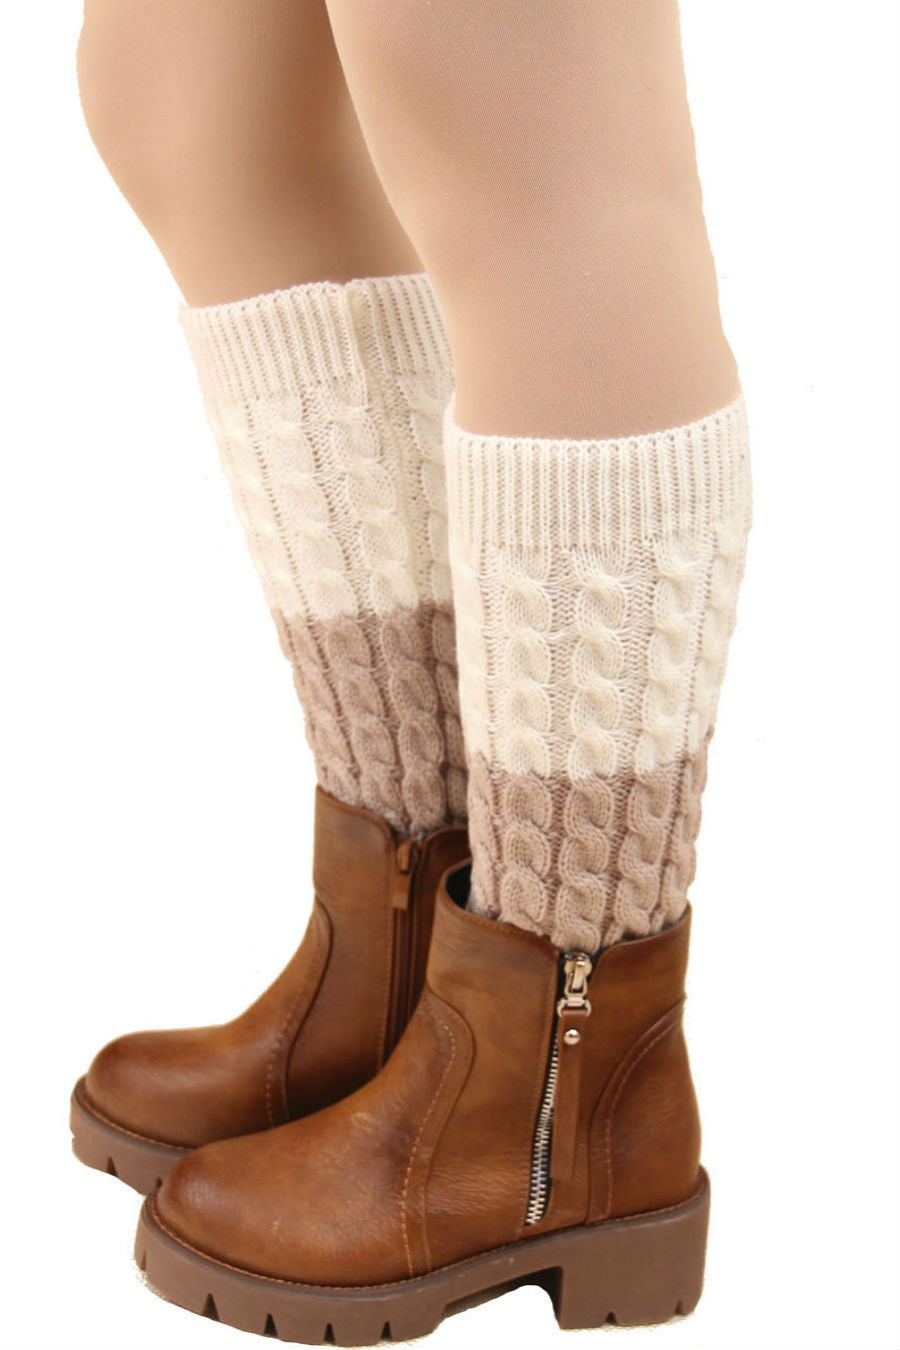 White And Beige Cable Knit Boot Cuffs